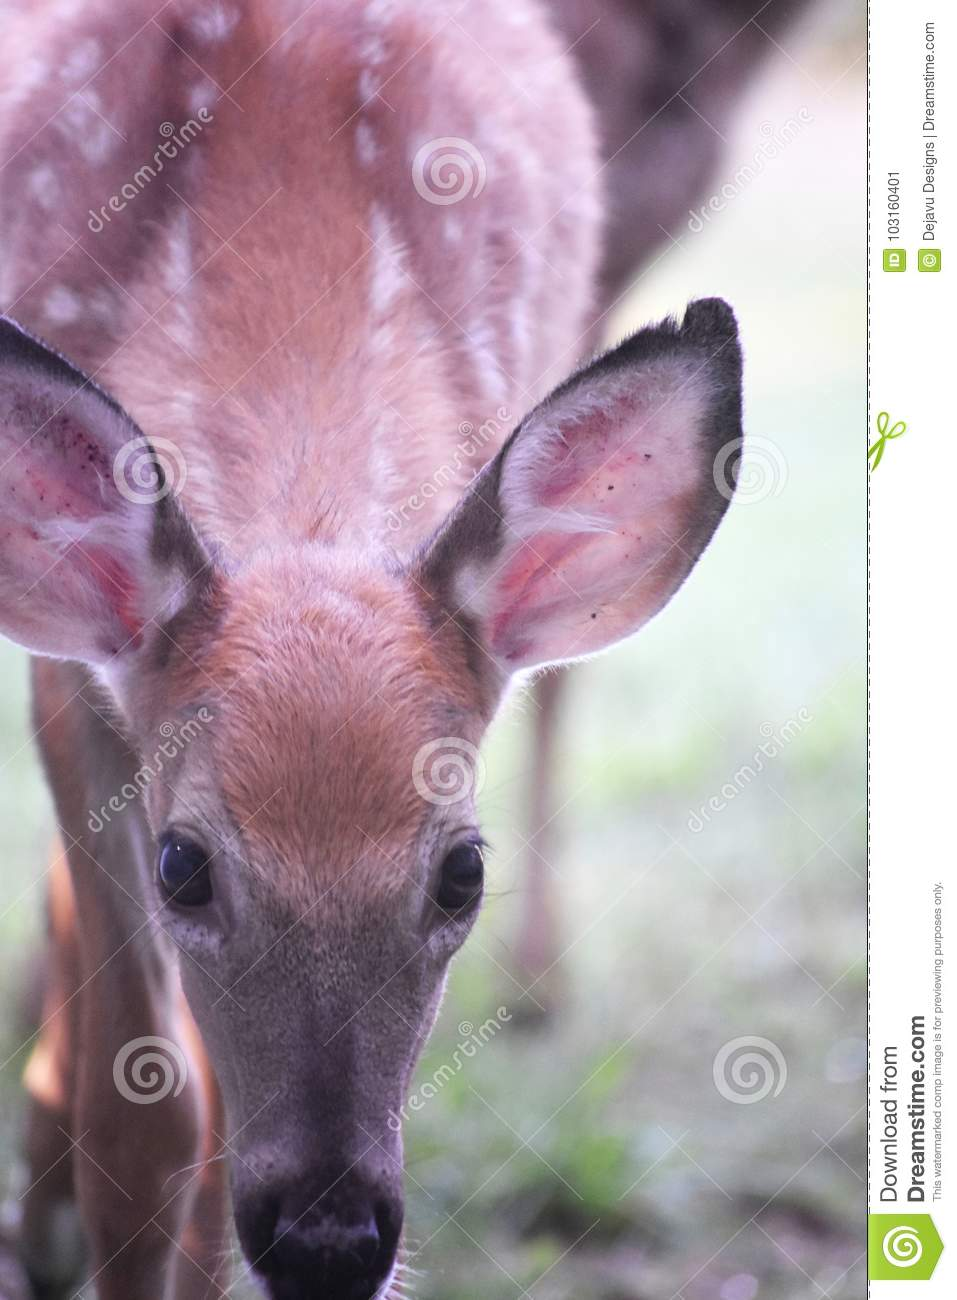 Cute white tailed deer with its head bowed